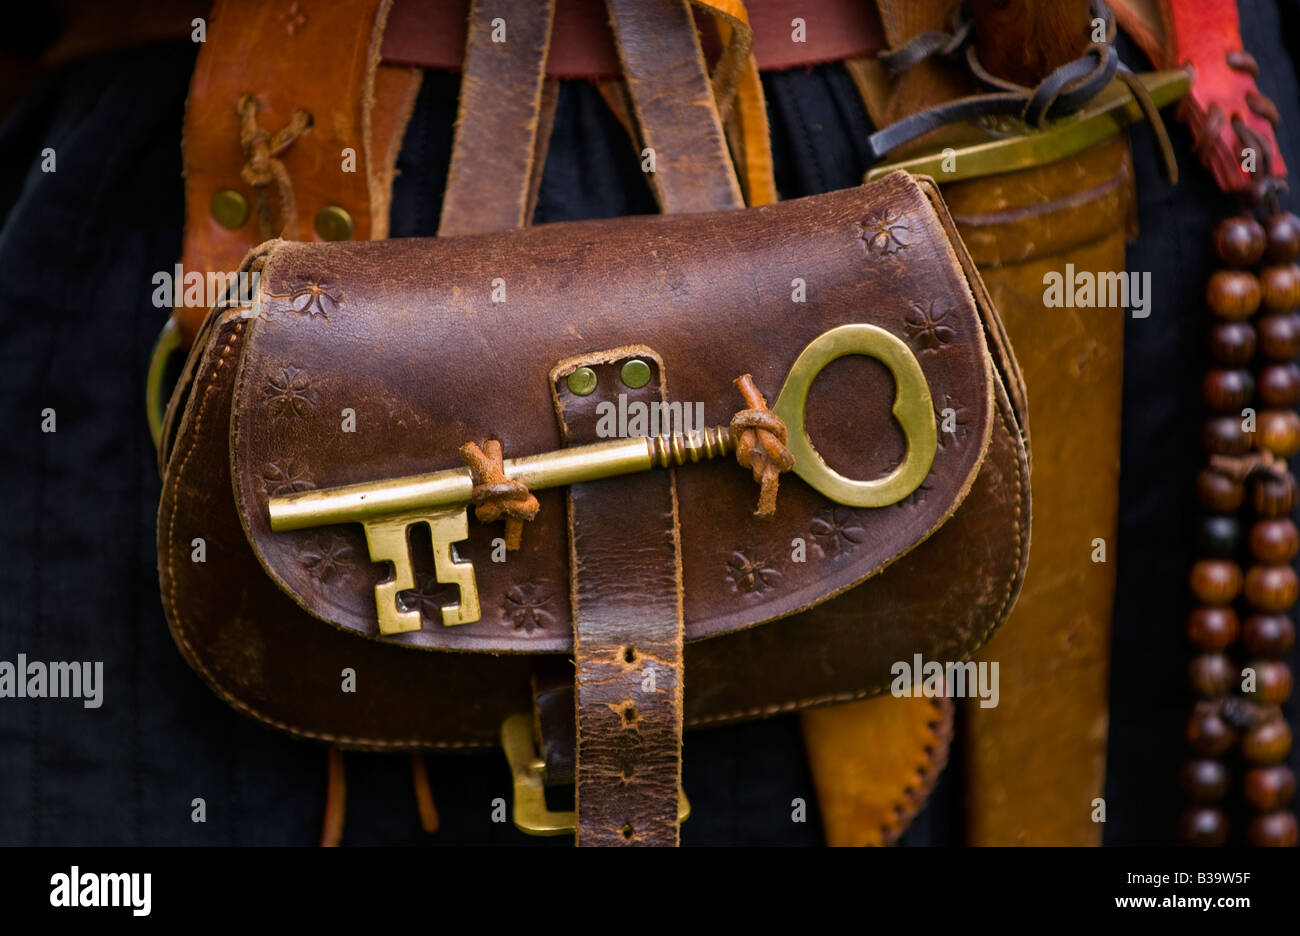 Reenactor wearing leather pouch with large brass key at Skenfrith Medieval Fun Day Monmouthshire Wales UK EU - Stock Image